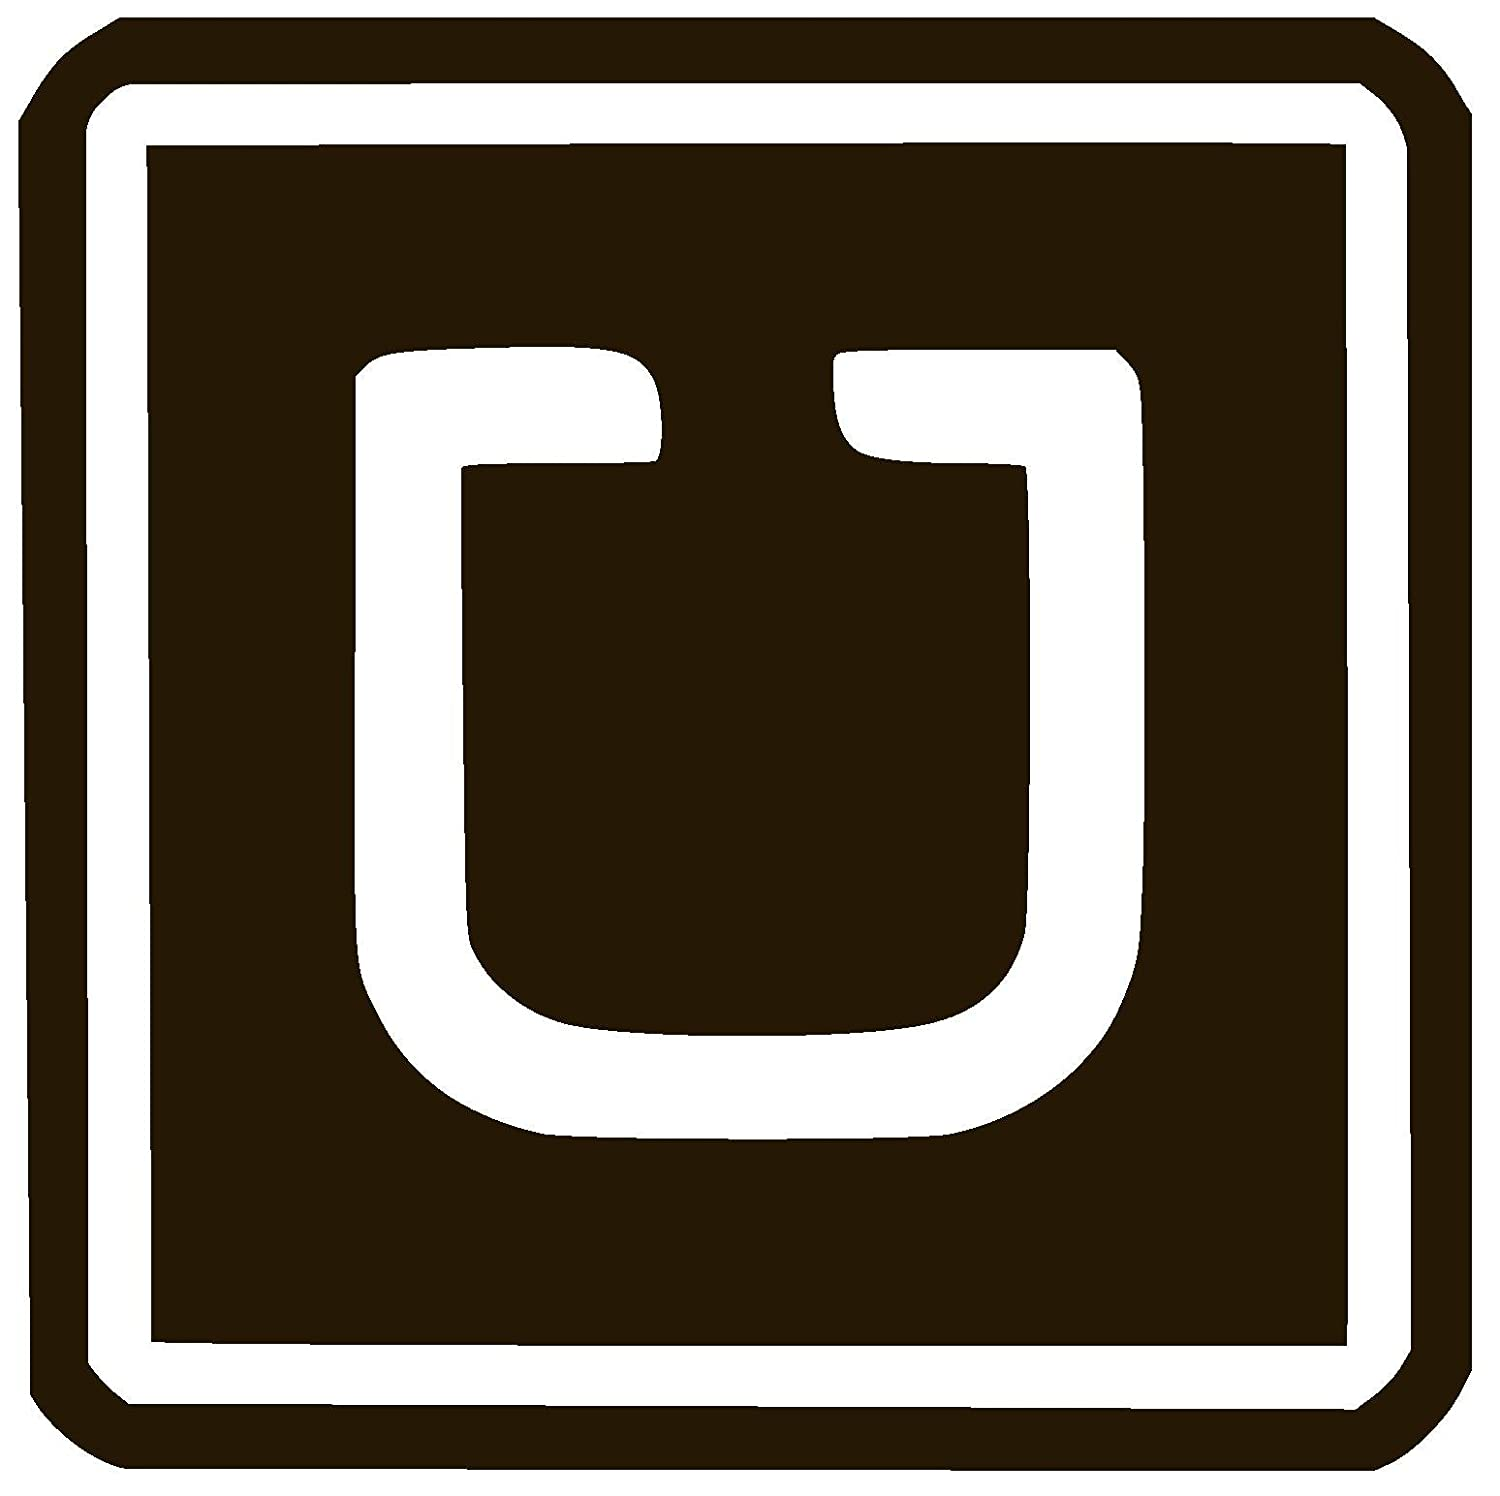 Amazon com uber logo vinyl sticker decal 6 x 6 black automotive